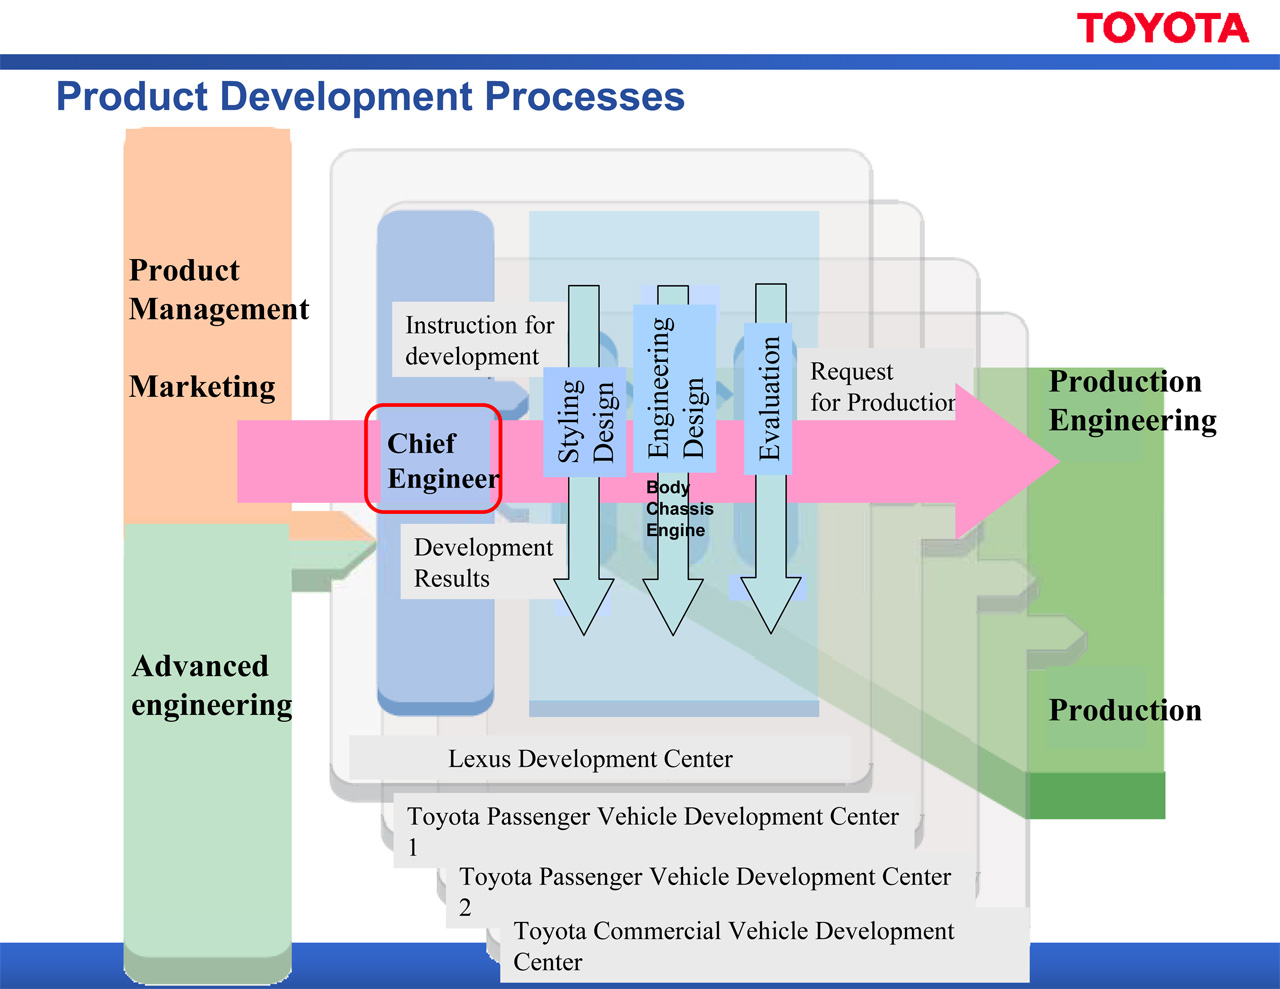 Toyota Global Vision and Strategy